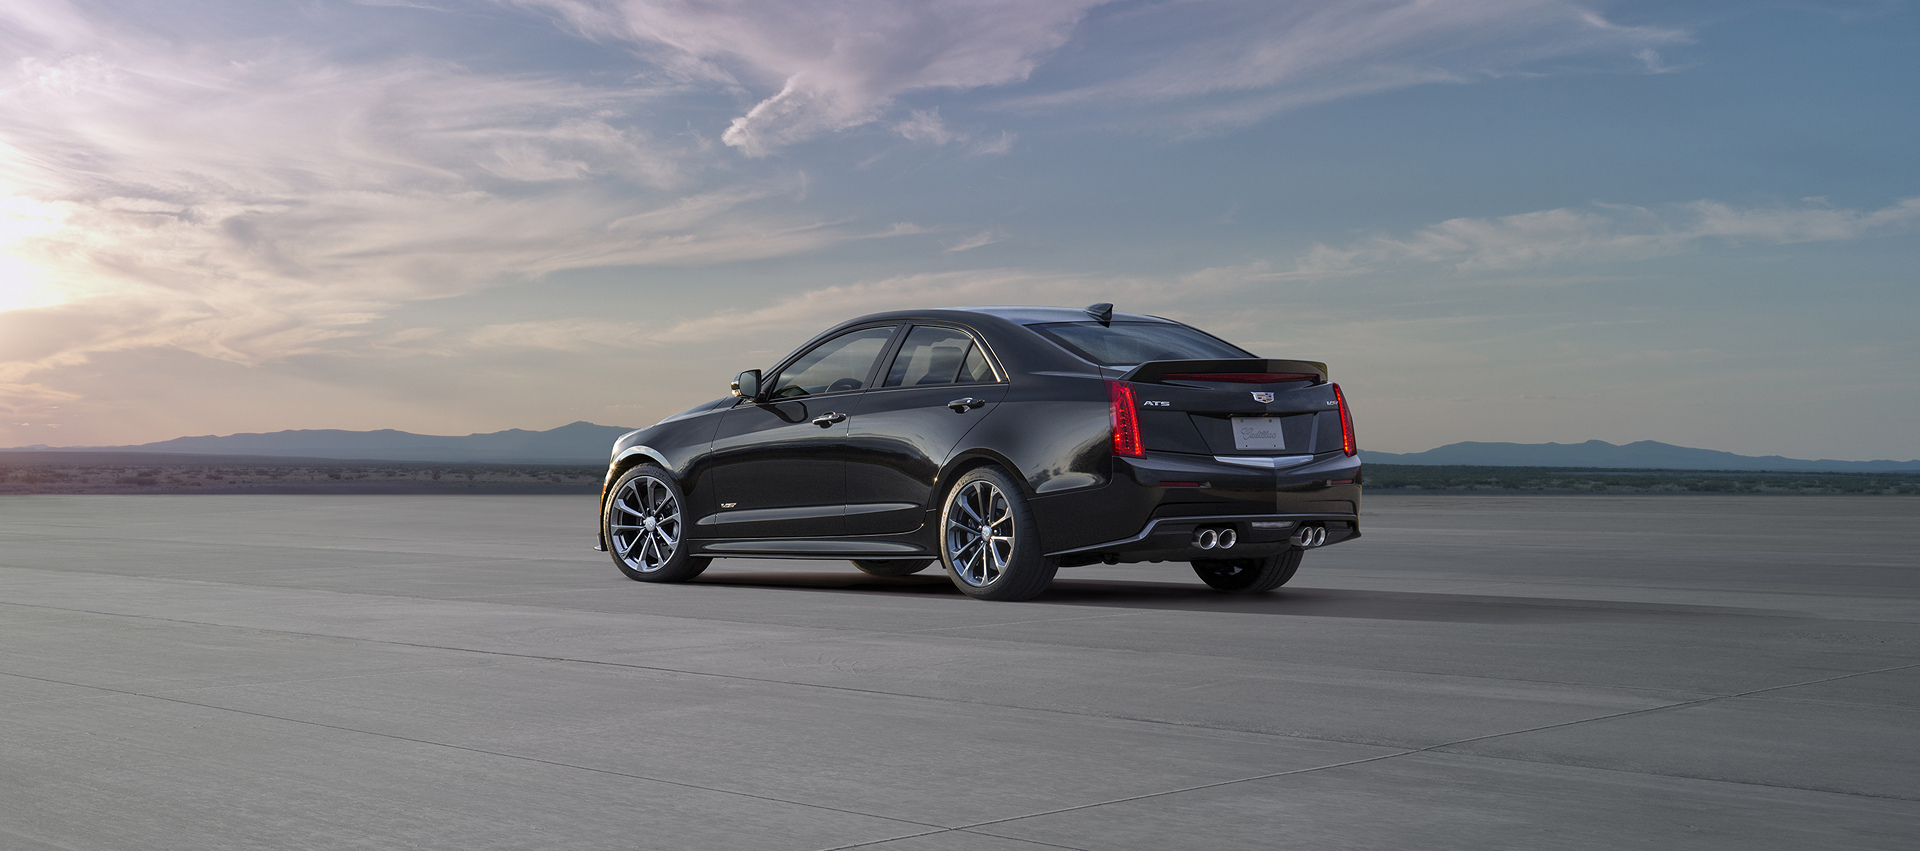 2017 Cadillac ATS-V © General Motors